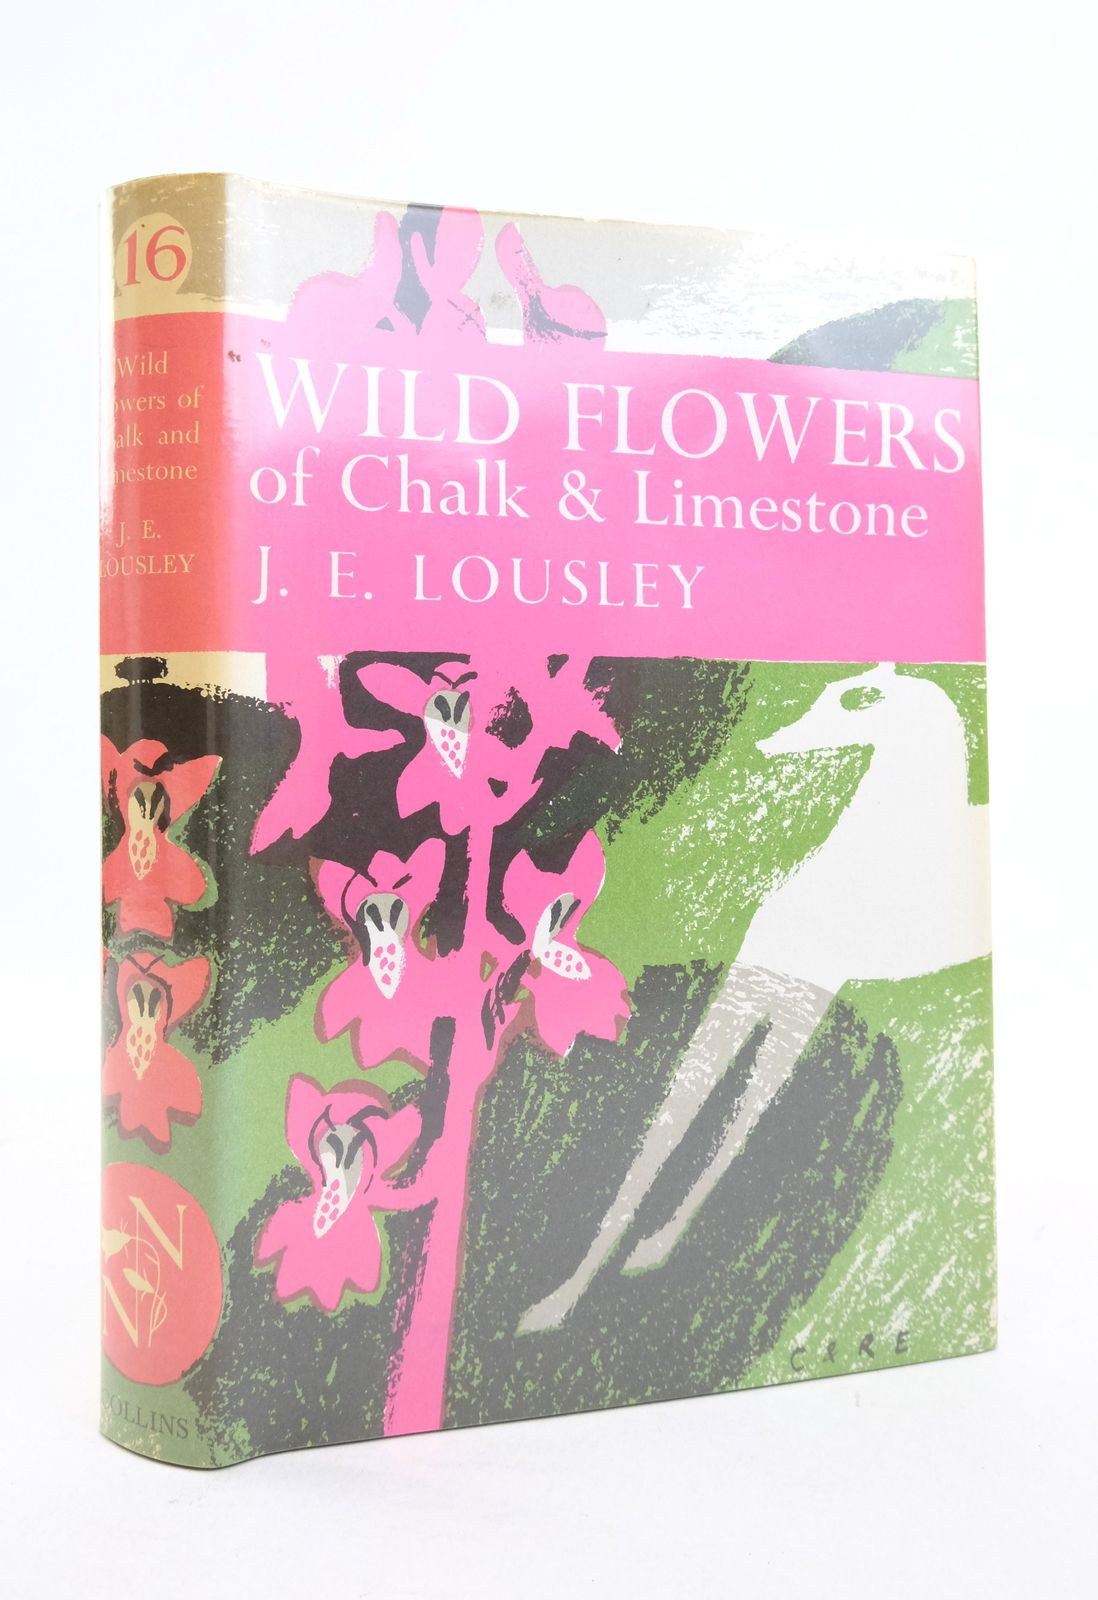 Photo of WILD FLOWERS OF CHALK & LIMESTONE written by Lousley, J.E. published by Collins (STOCK CODE: 1821594)  for sale by Stella & Rose's Books